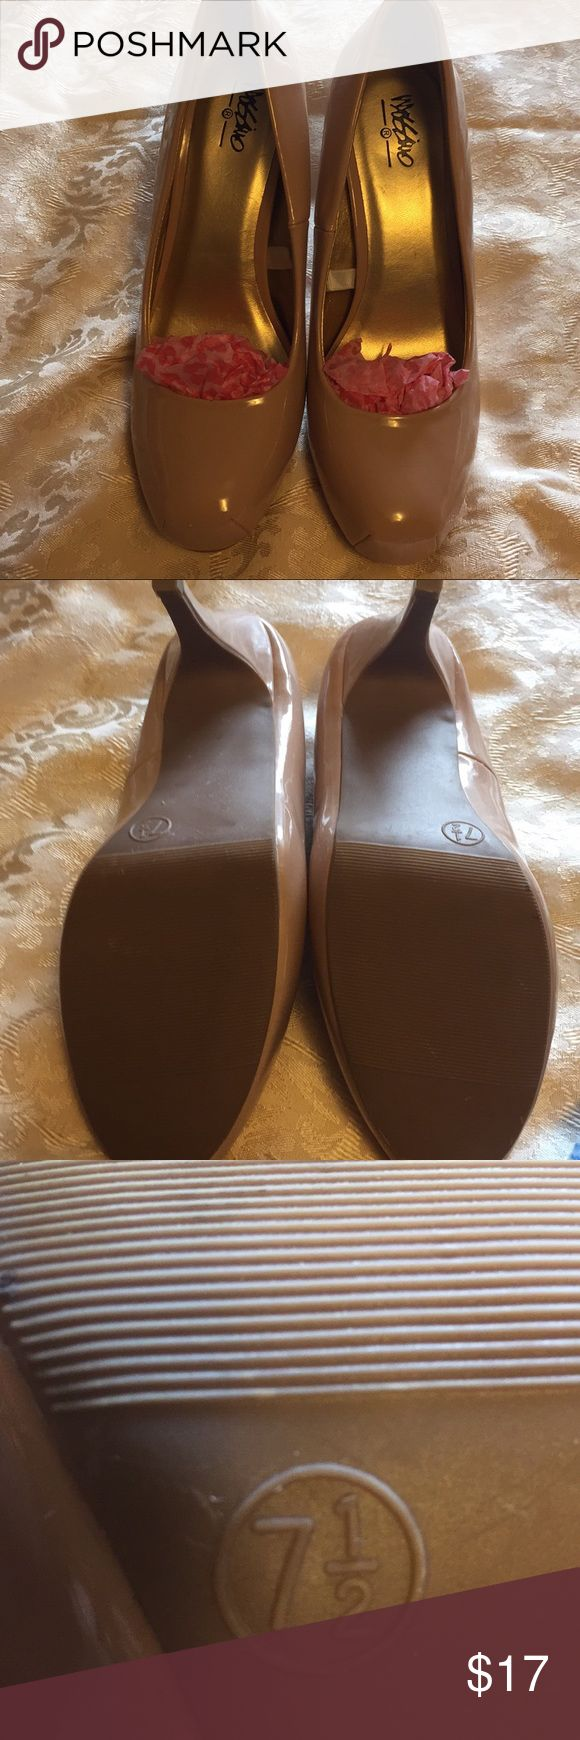 Ladies Creme colored Pumps Super cute Mossimo's Pumps Creme Color heels.  Never worn. Heels have no ware at all. See all pics please.  Ready to wear ladies. Heels are 3.5 in high 🛍👠👠 EUC 🙂 Mossimos Shoes Heels